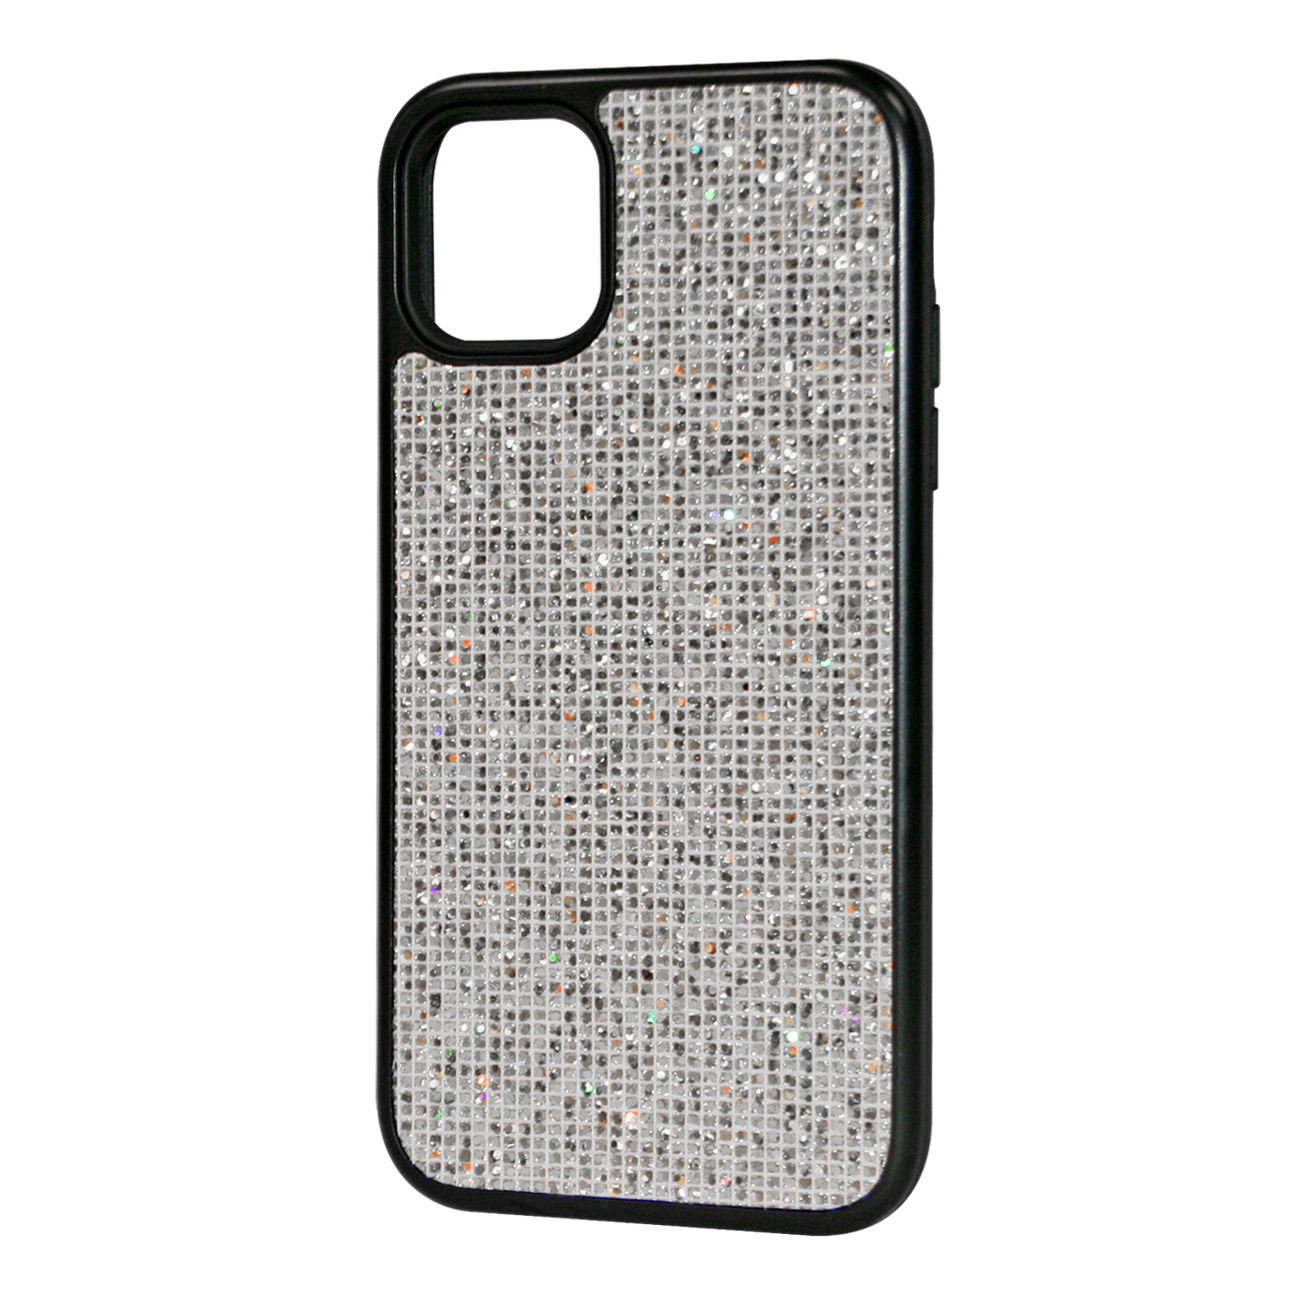 DIAMOND RHINESTONE Case For APPLE IPHONE 11 PRO MAX In Silver